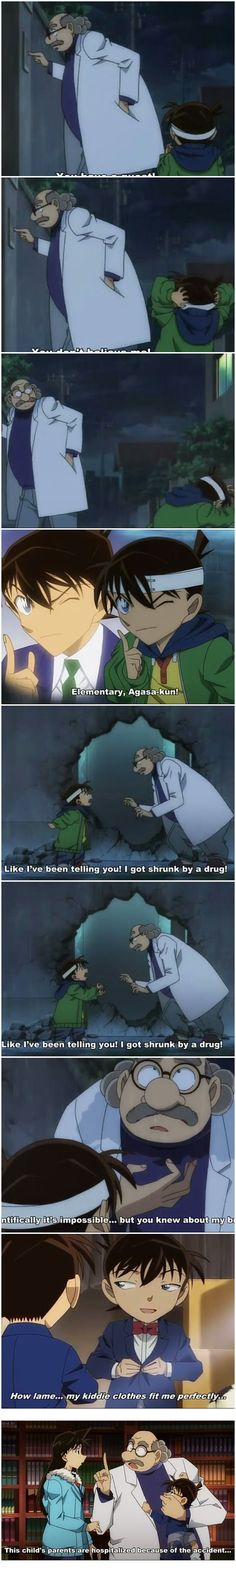 Shinichi, explaining his situation